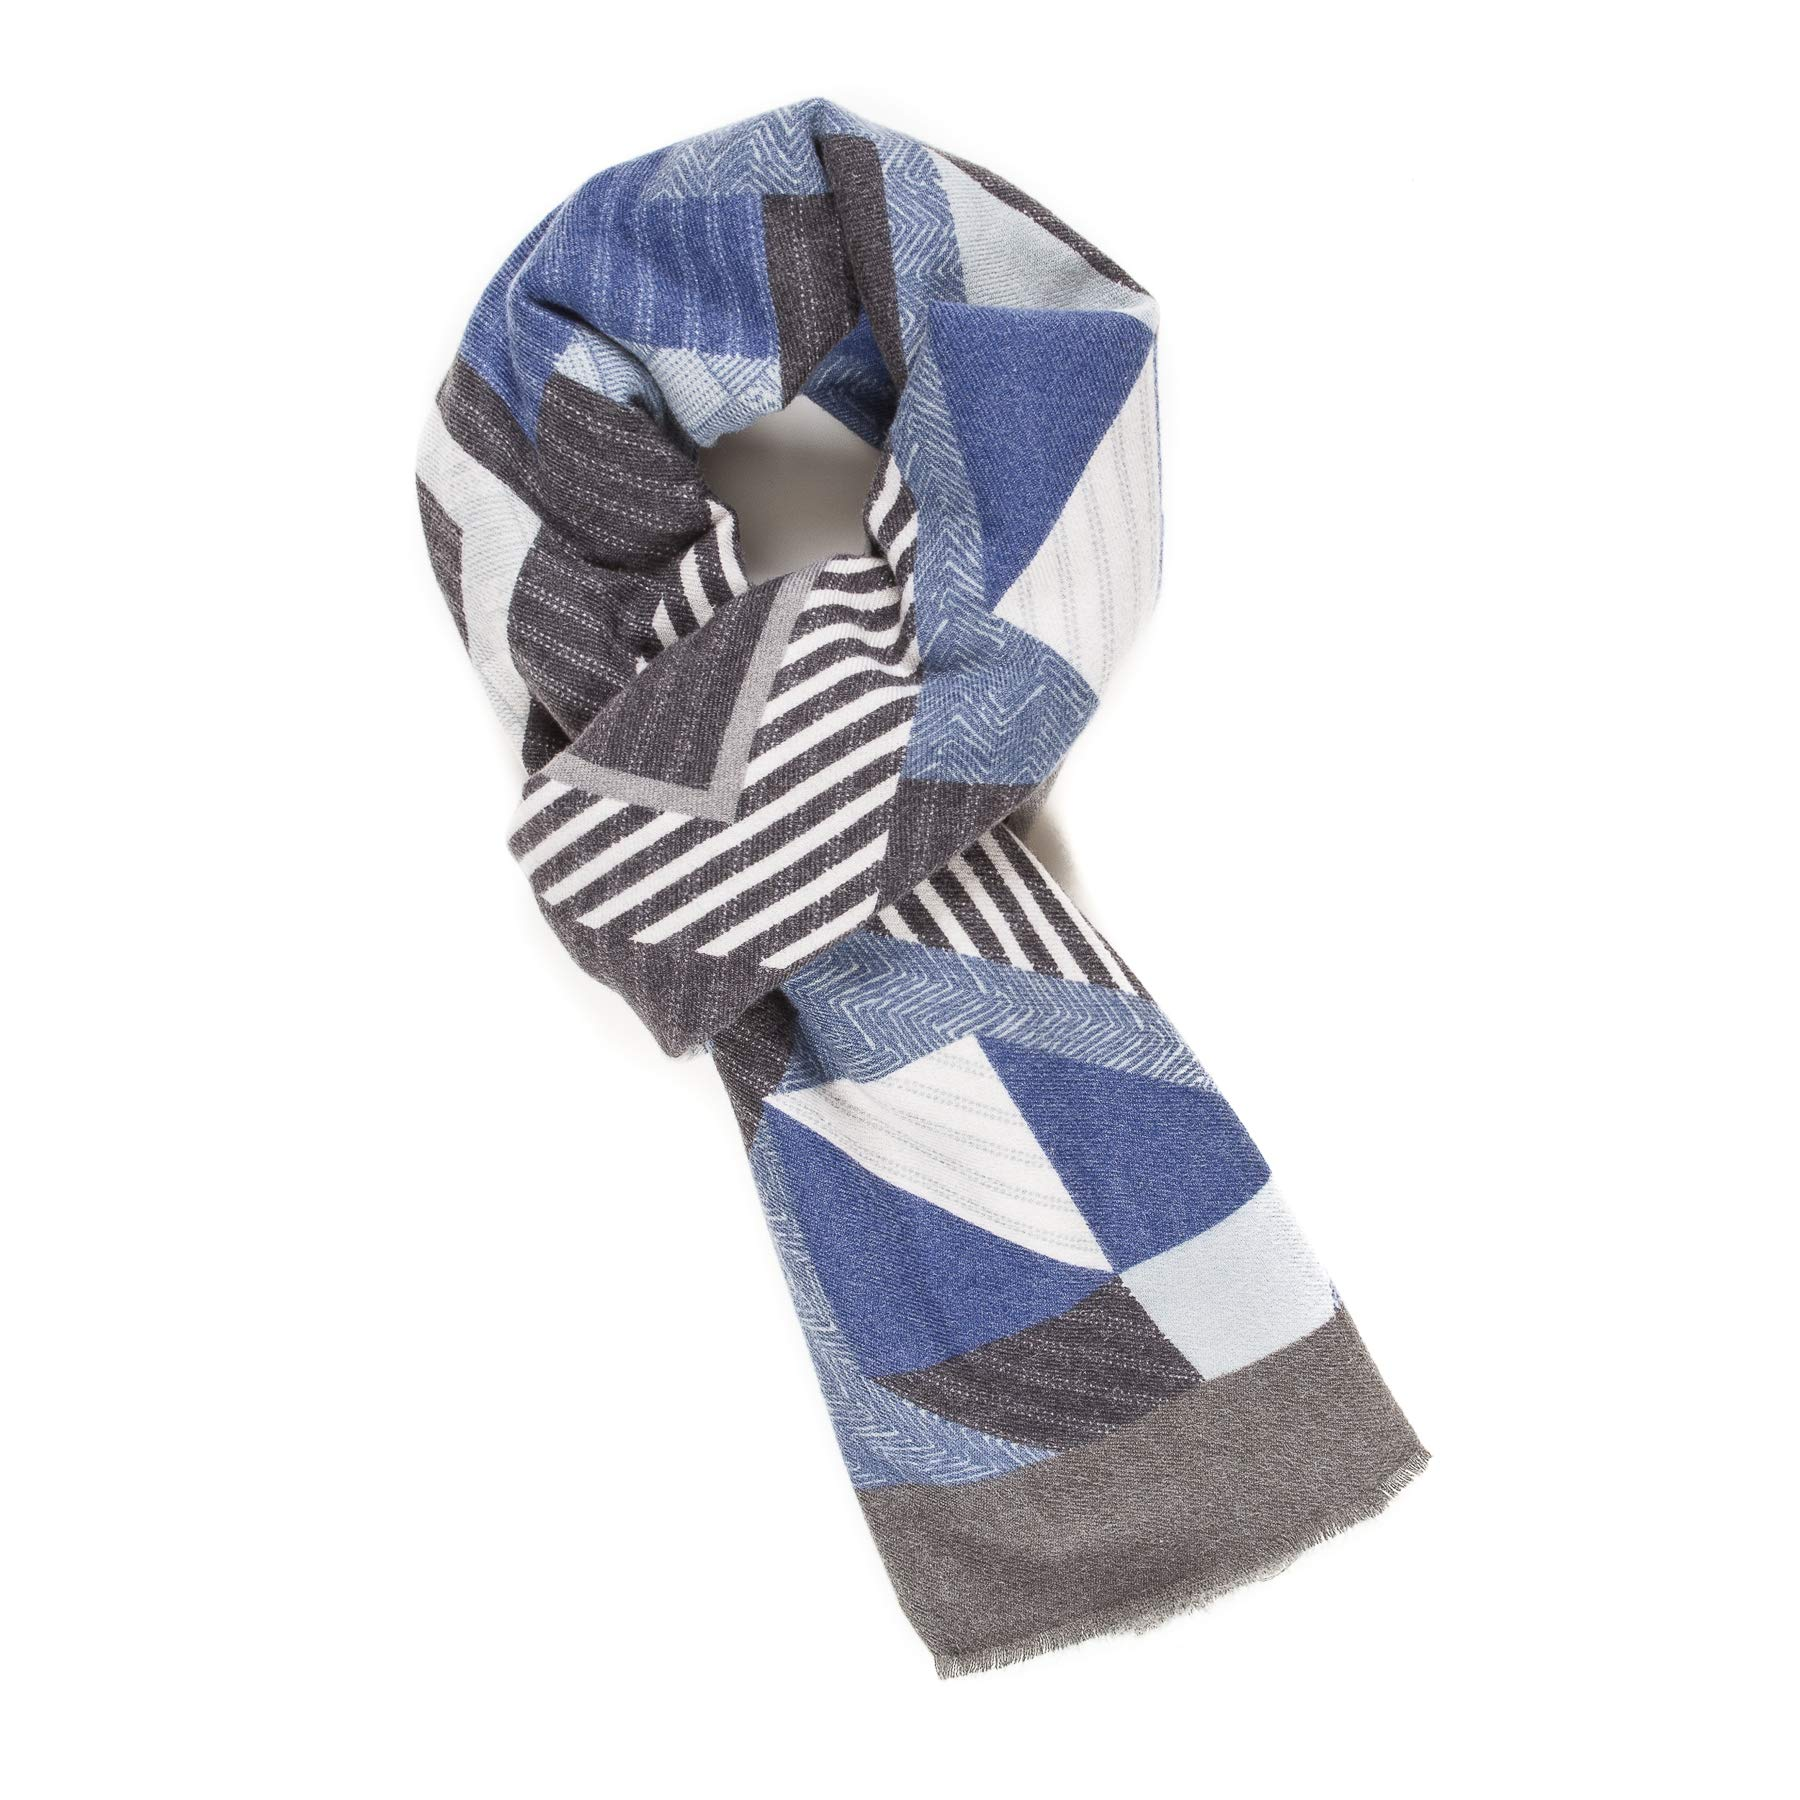 d8e2ca34ffc2b Scarf for Men Reversible Elegant Classic Cashmere Feel Scarves for Spring  Winter product image